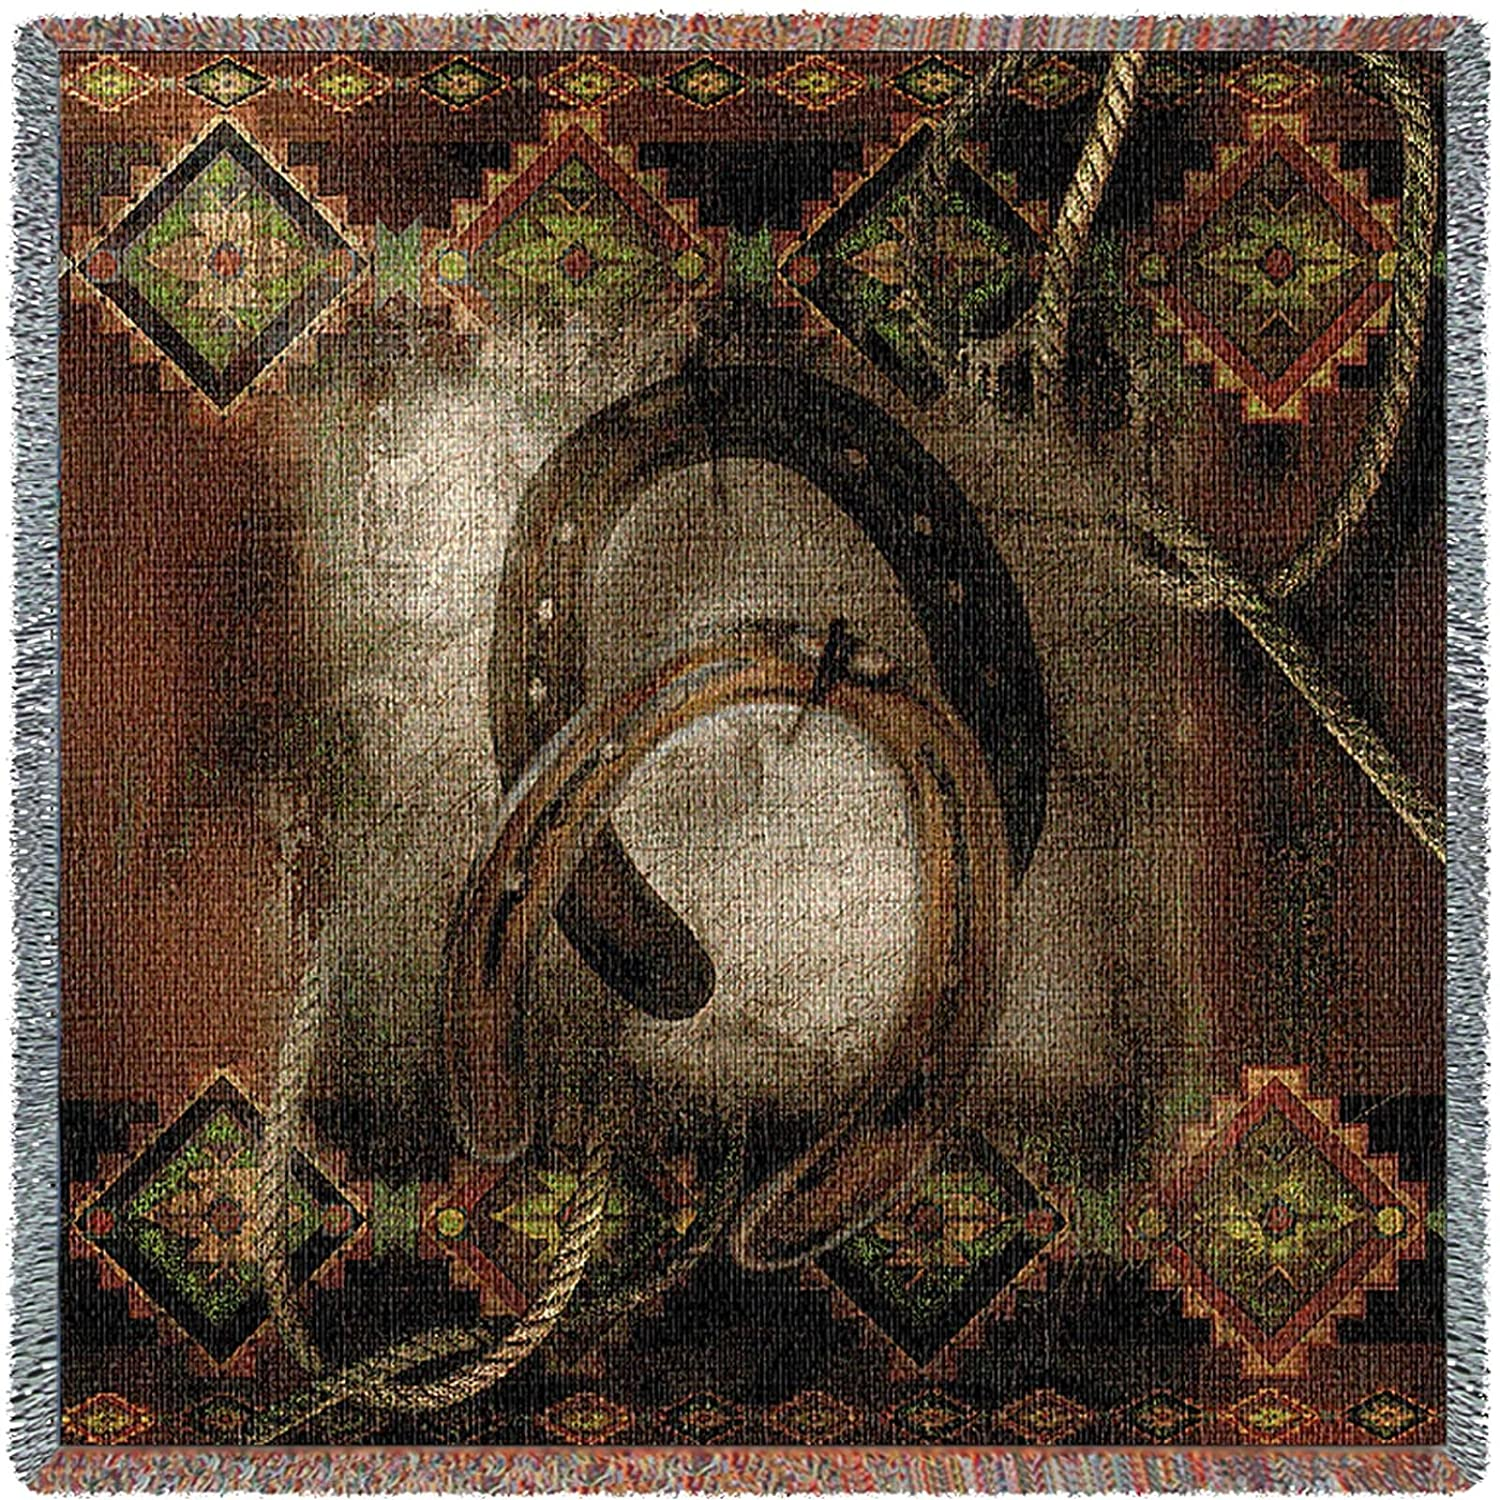 Pure Country Inc. Western Horseshoe Small Tapestry Throw Blanket Pure Country Weavers 1789-LS